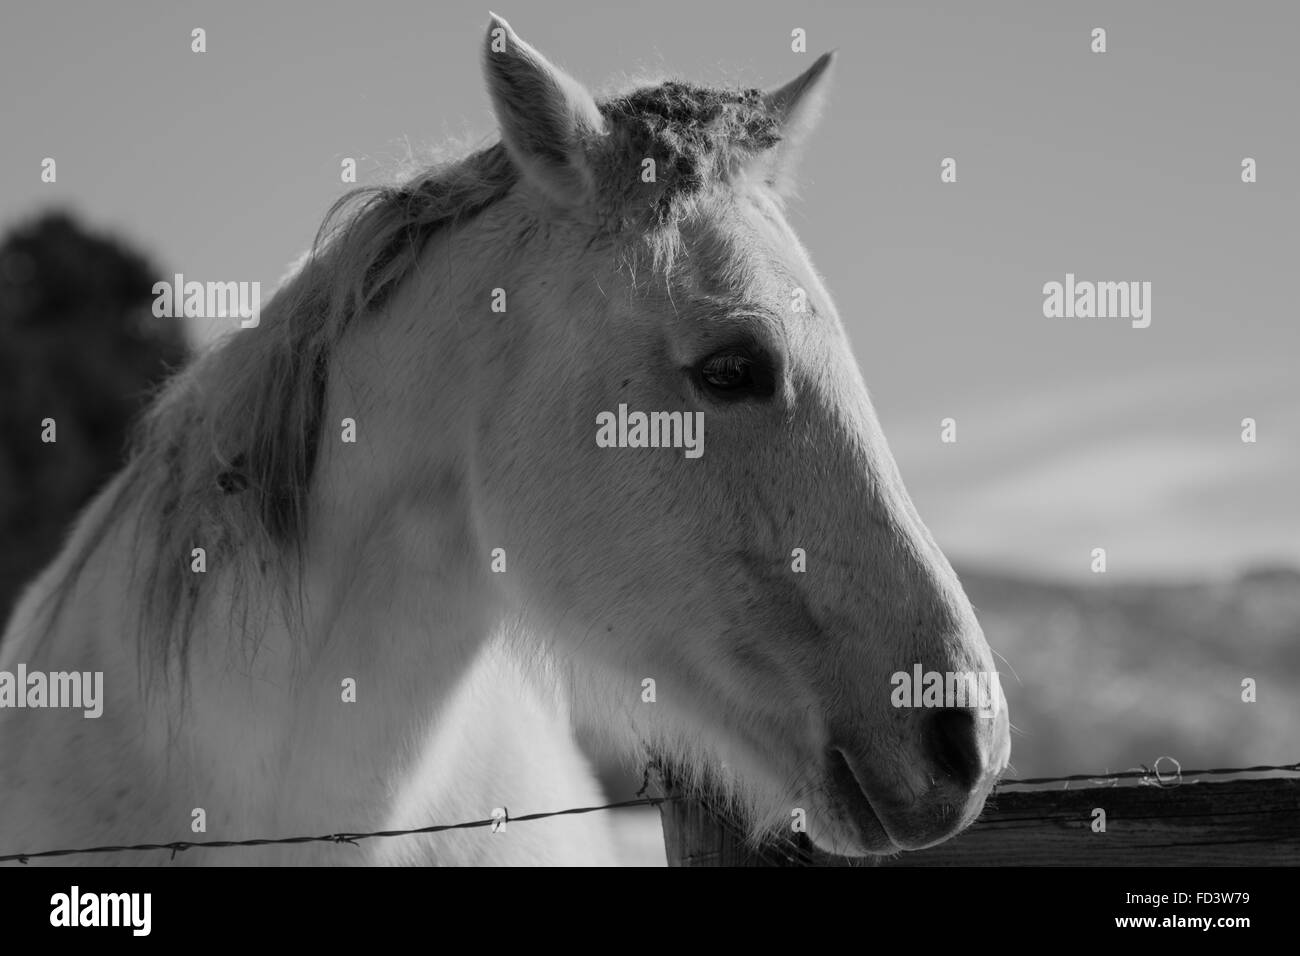 A couple of gray horses in a snowy field in Aspen, Colorado - Stock Image